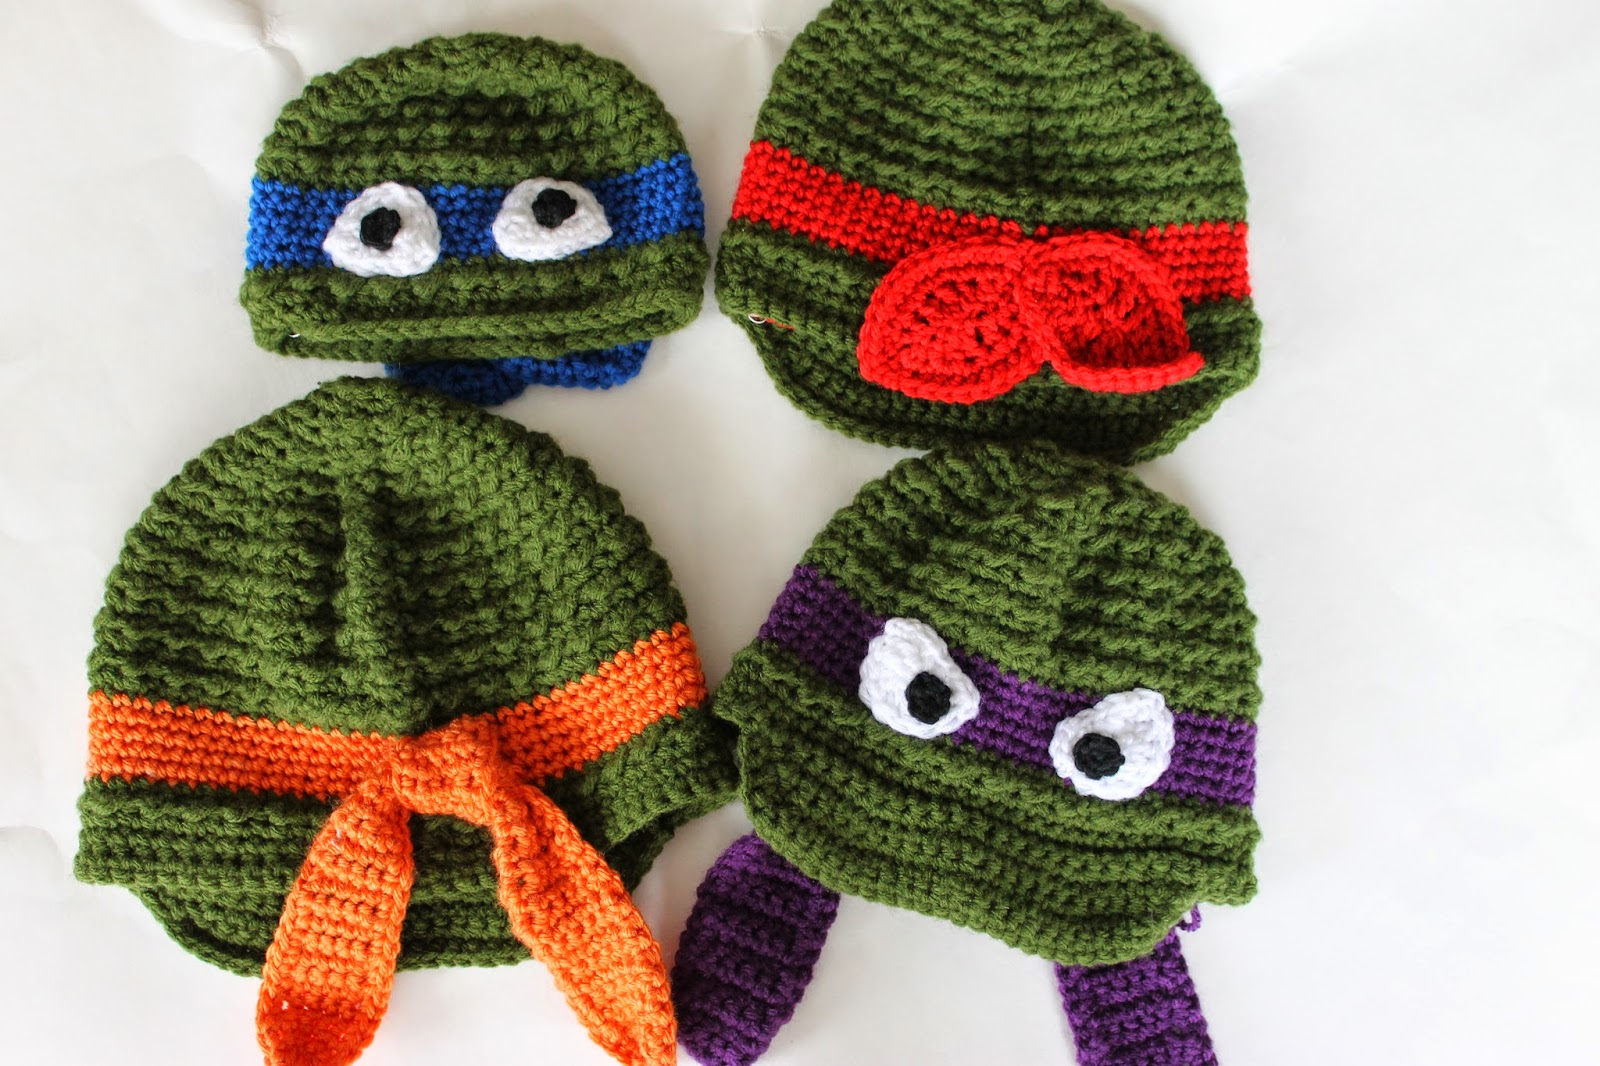 b5d19164a3e Etsy  https   www.etsy.com listing 201643300 ninja-turtle-newsboy-and-beanie -hat ref shop home feat 4